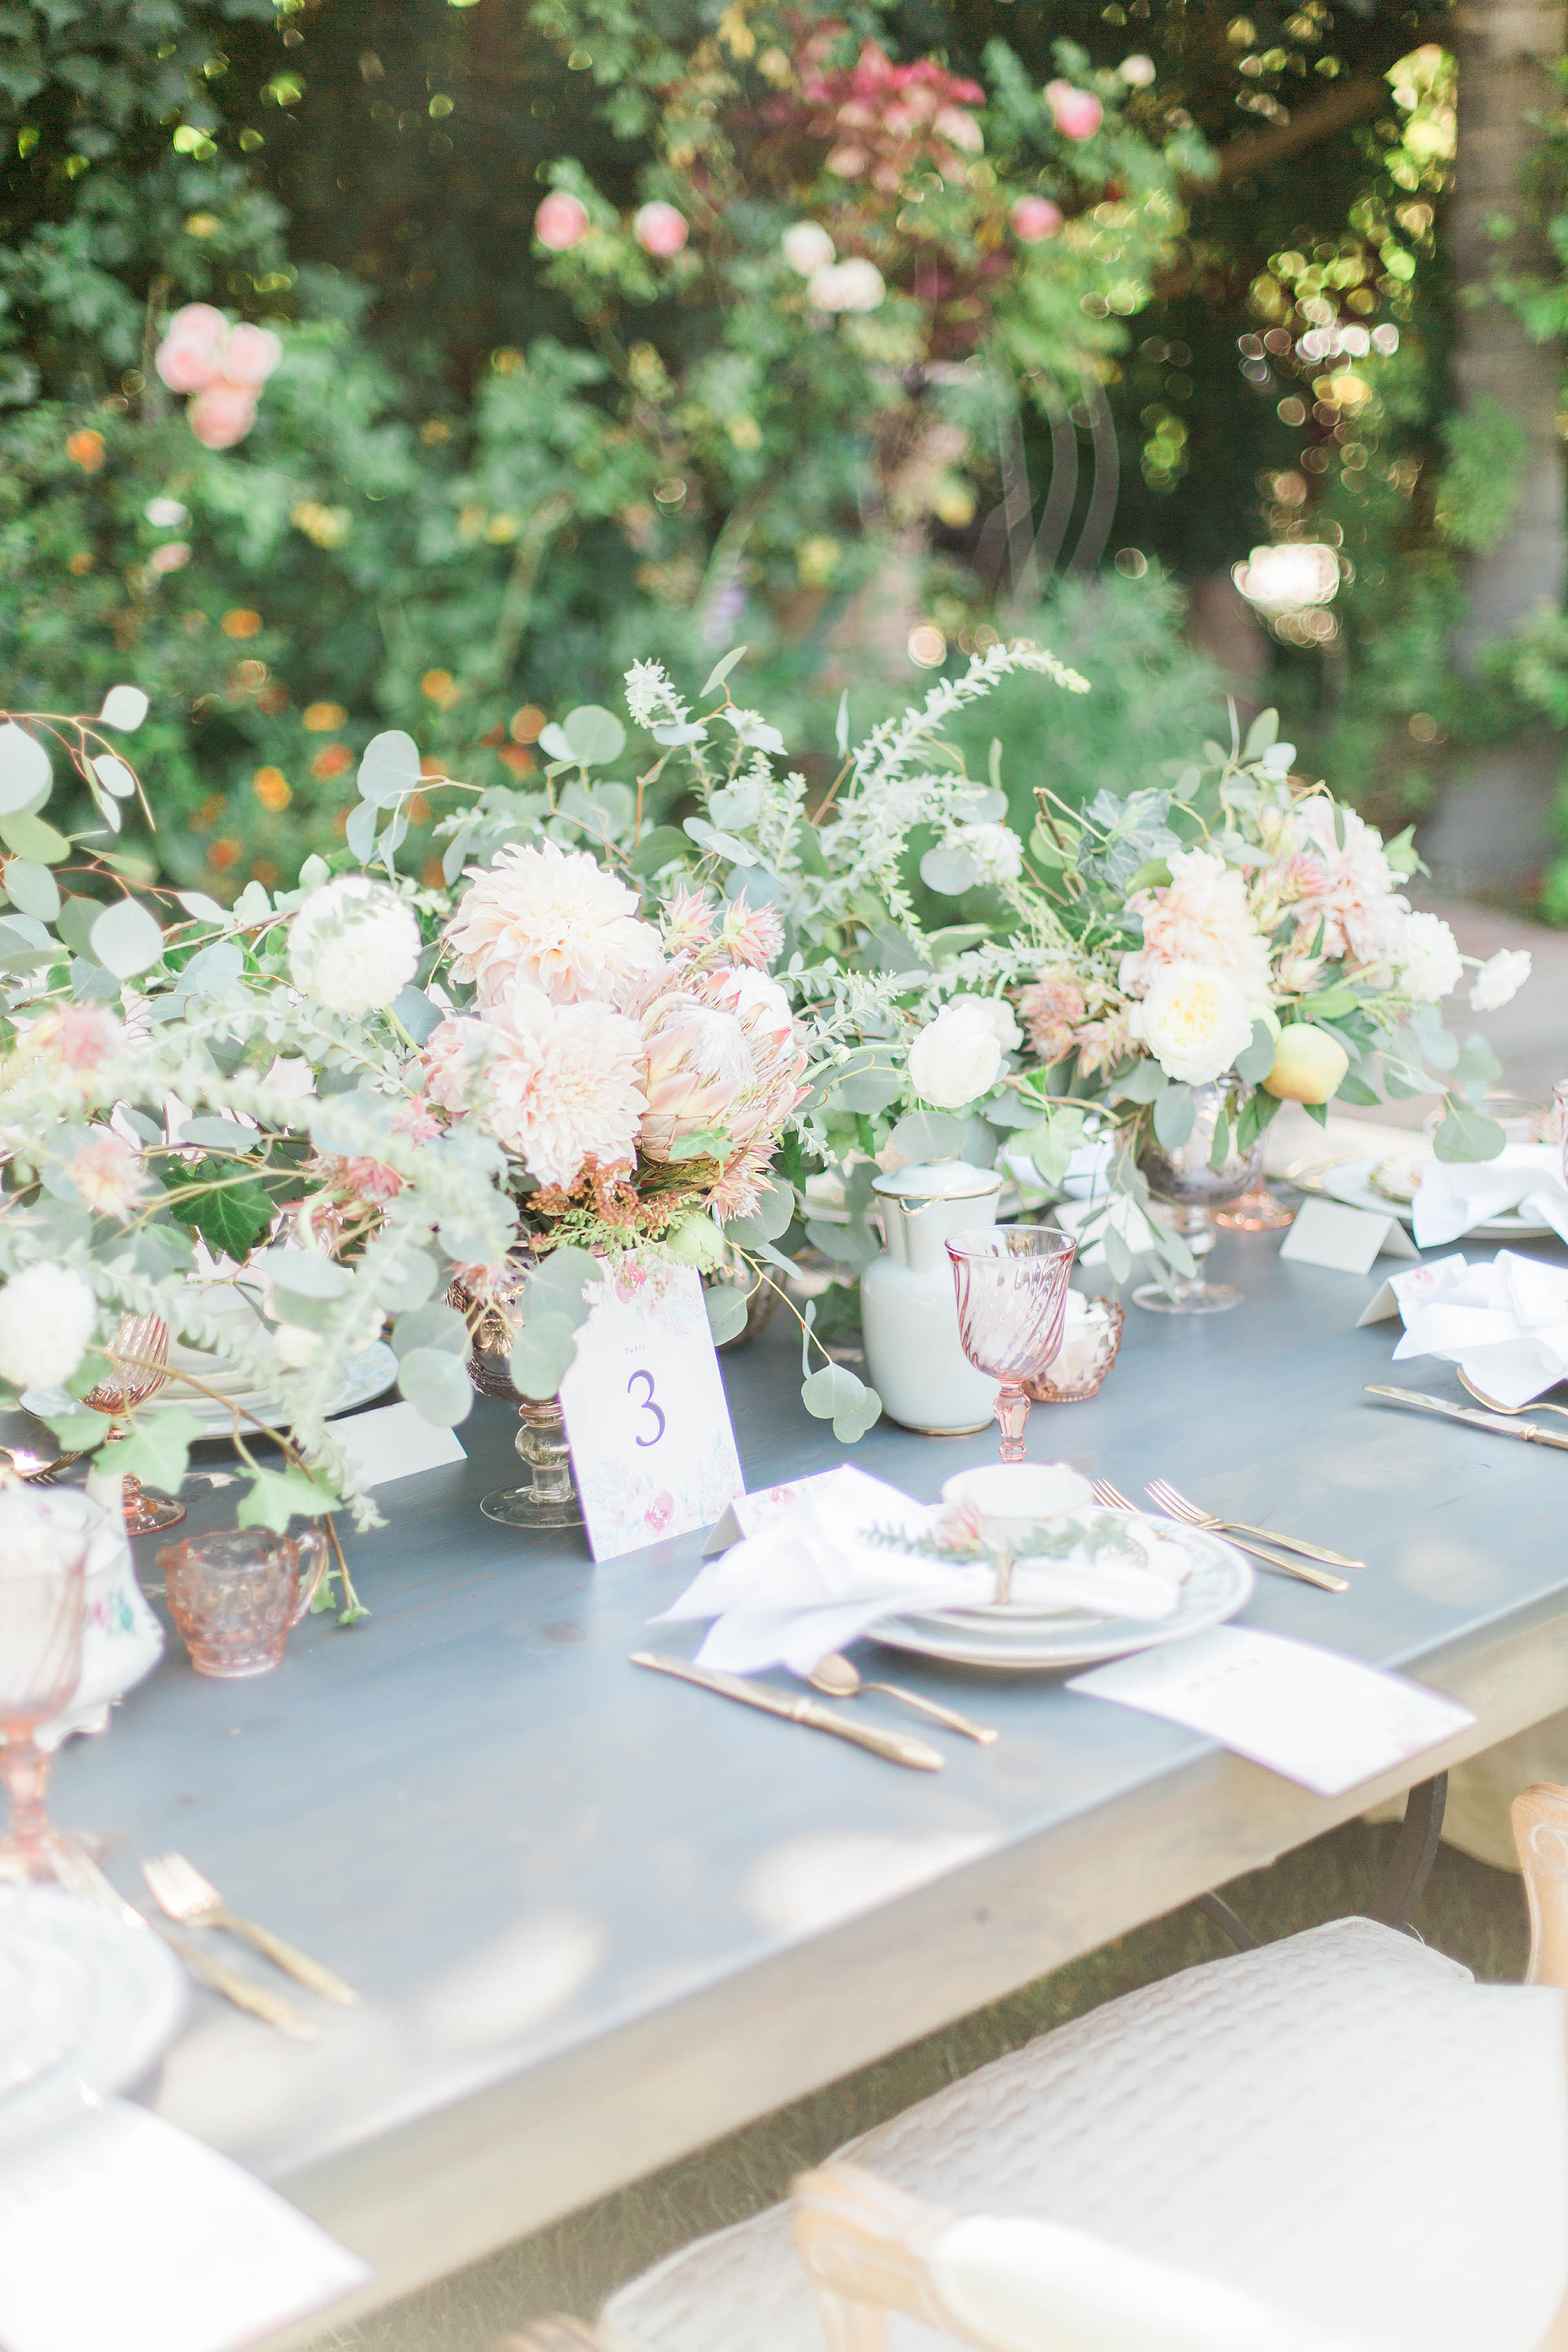 Loose, Romantic Cluster Centerpieces at Outdoor Wedding